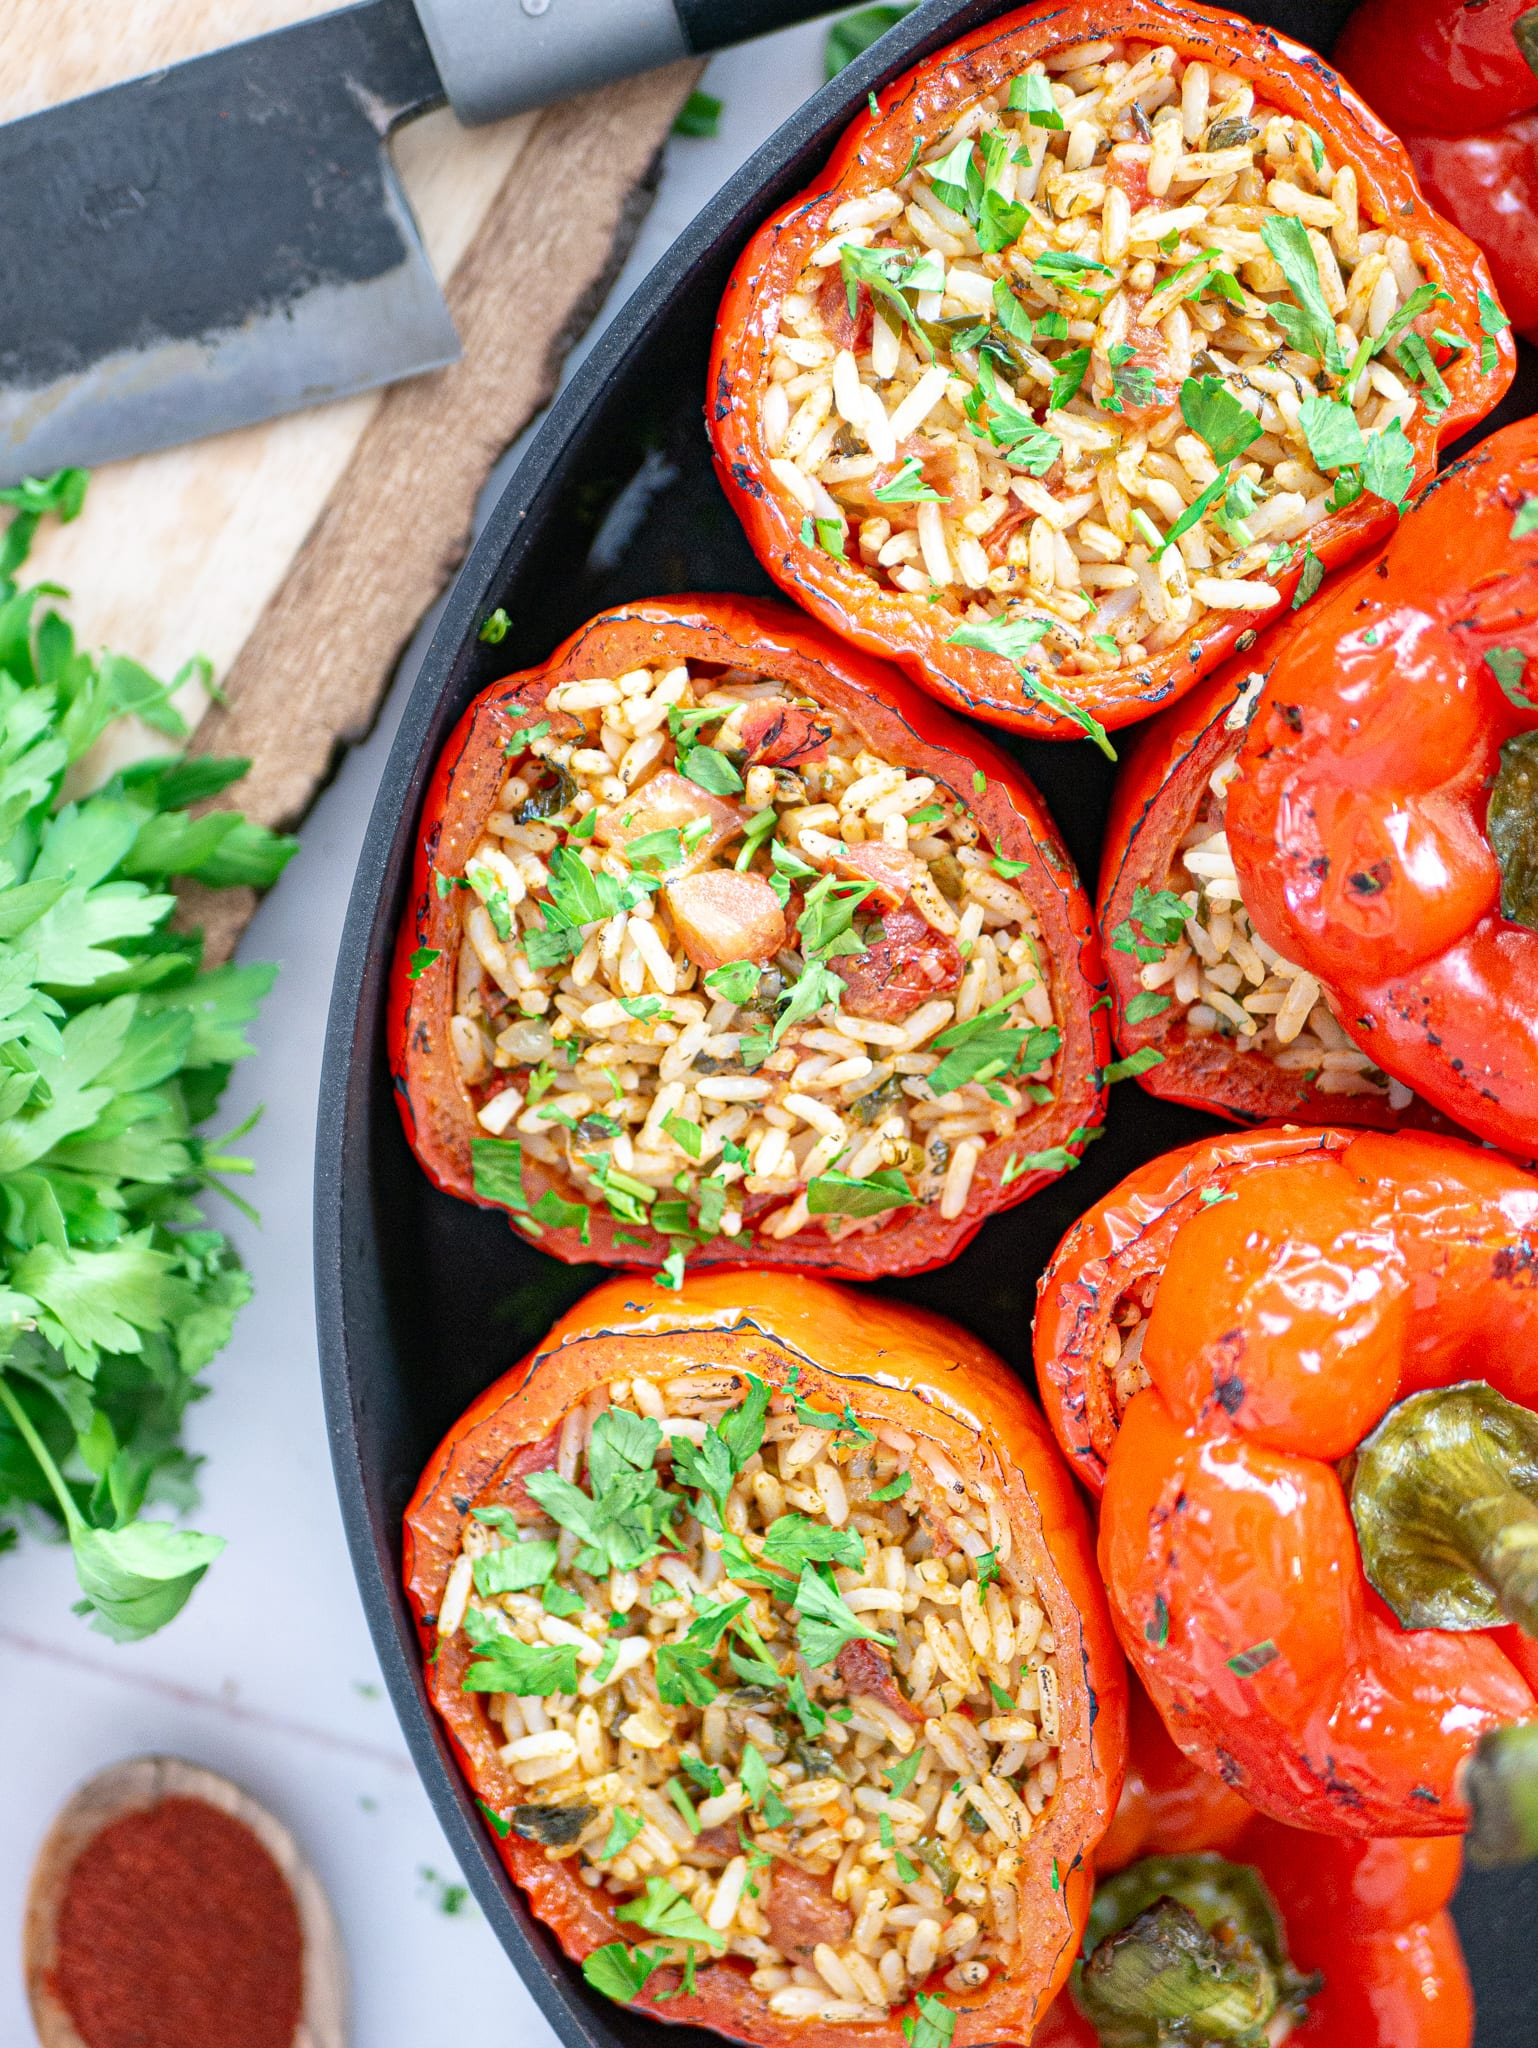 VEGAN STUFFED RED PEPPERS WITH RICE